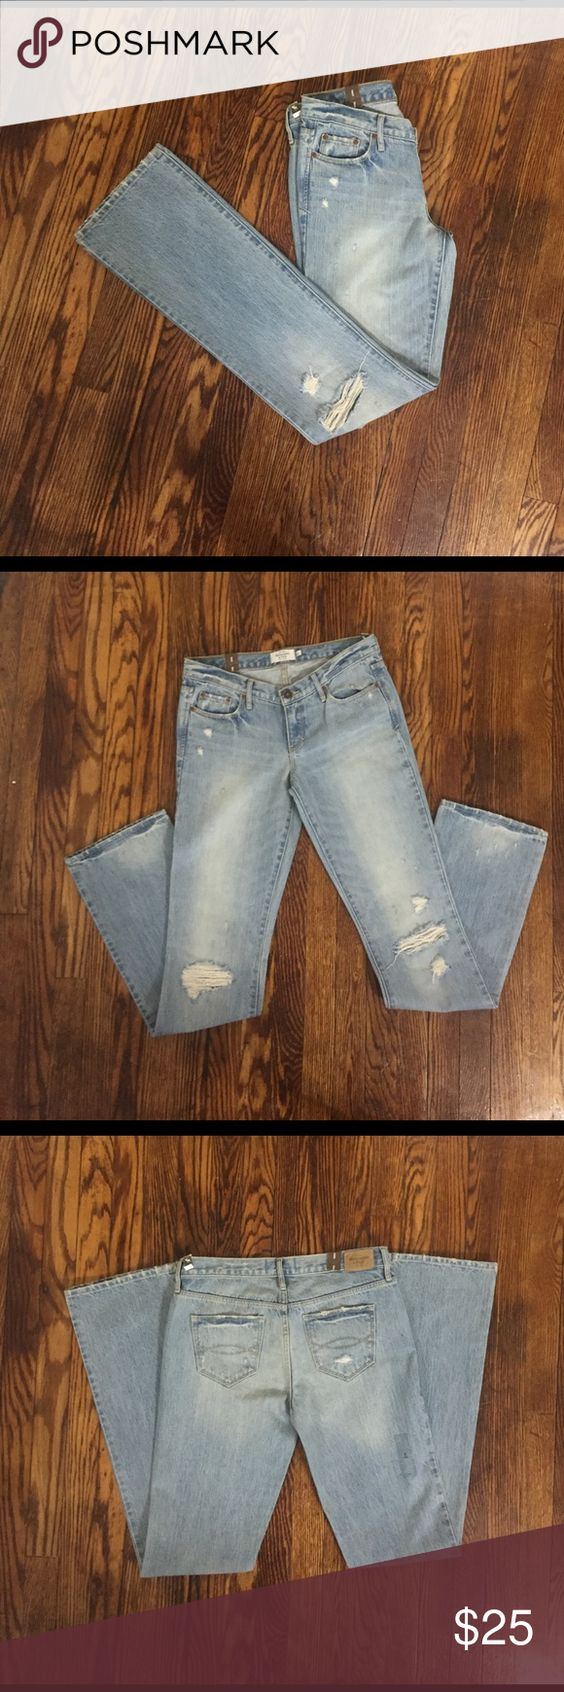 Abercrombie & Fitch NWT Emma Boot Cut Jeans Super cute distressed style jeans!                                         Inseam- 34 1/2 inches; Length- 43 inches; size-4 Long Abercrombie & Fitch Jeans Boot Cut